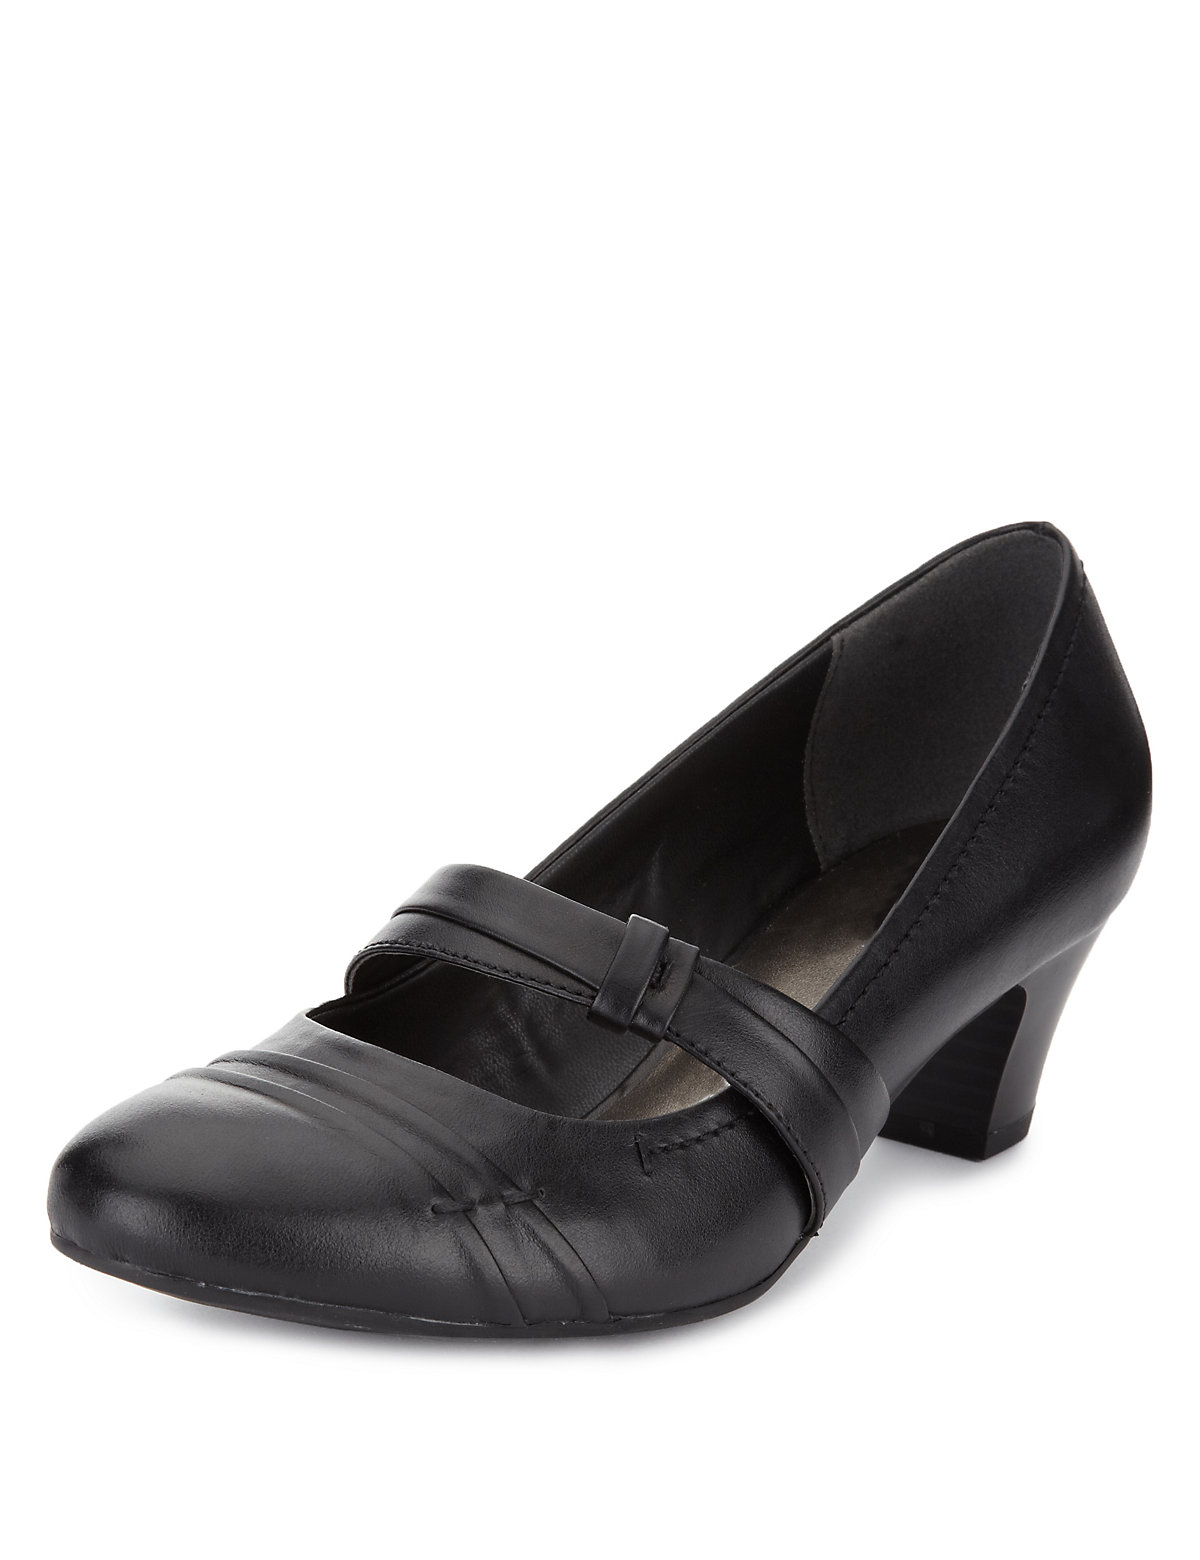 Footglove Leather Wide Fit Dolly Court Shoes